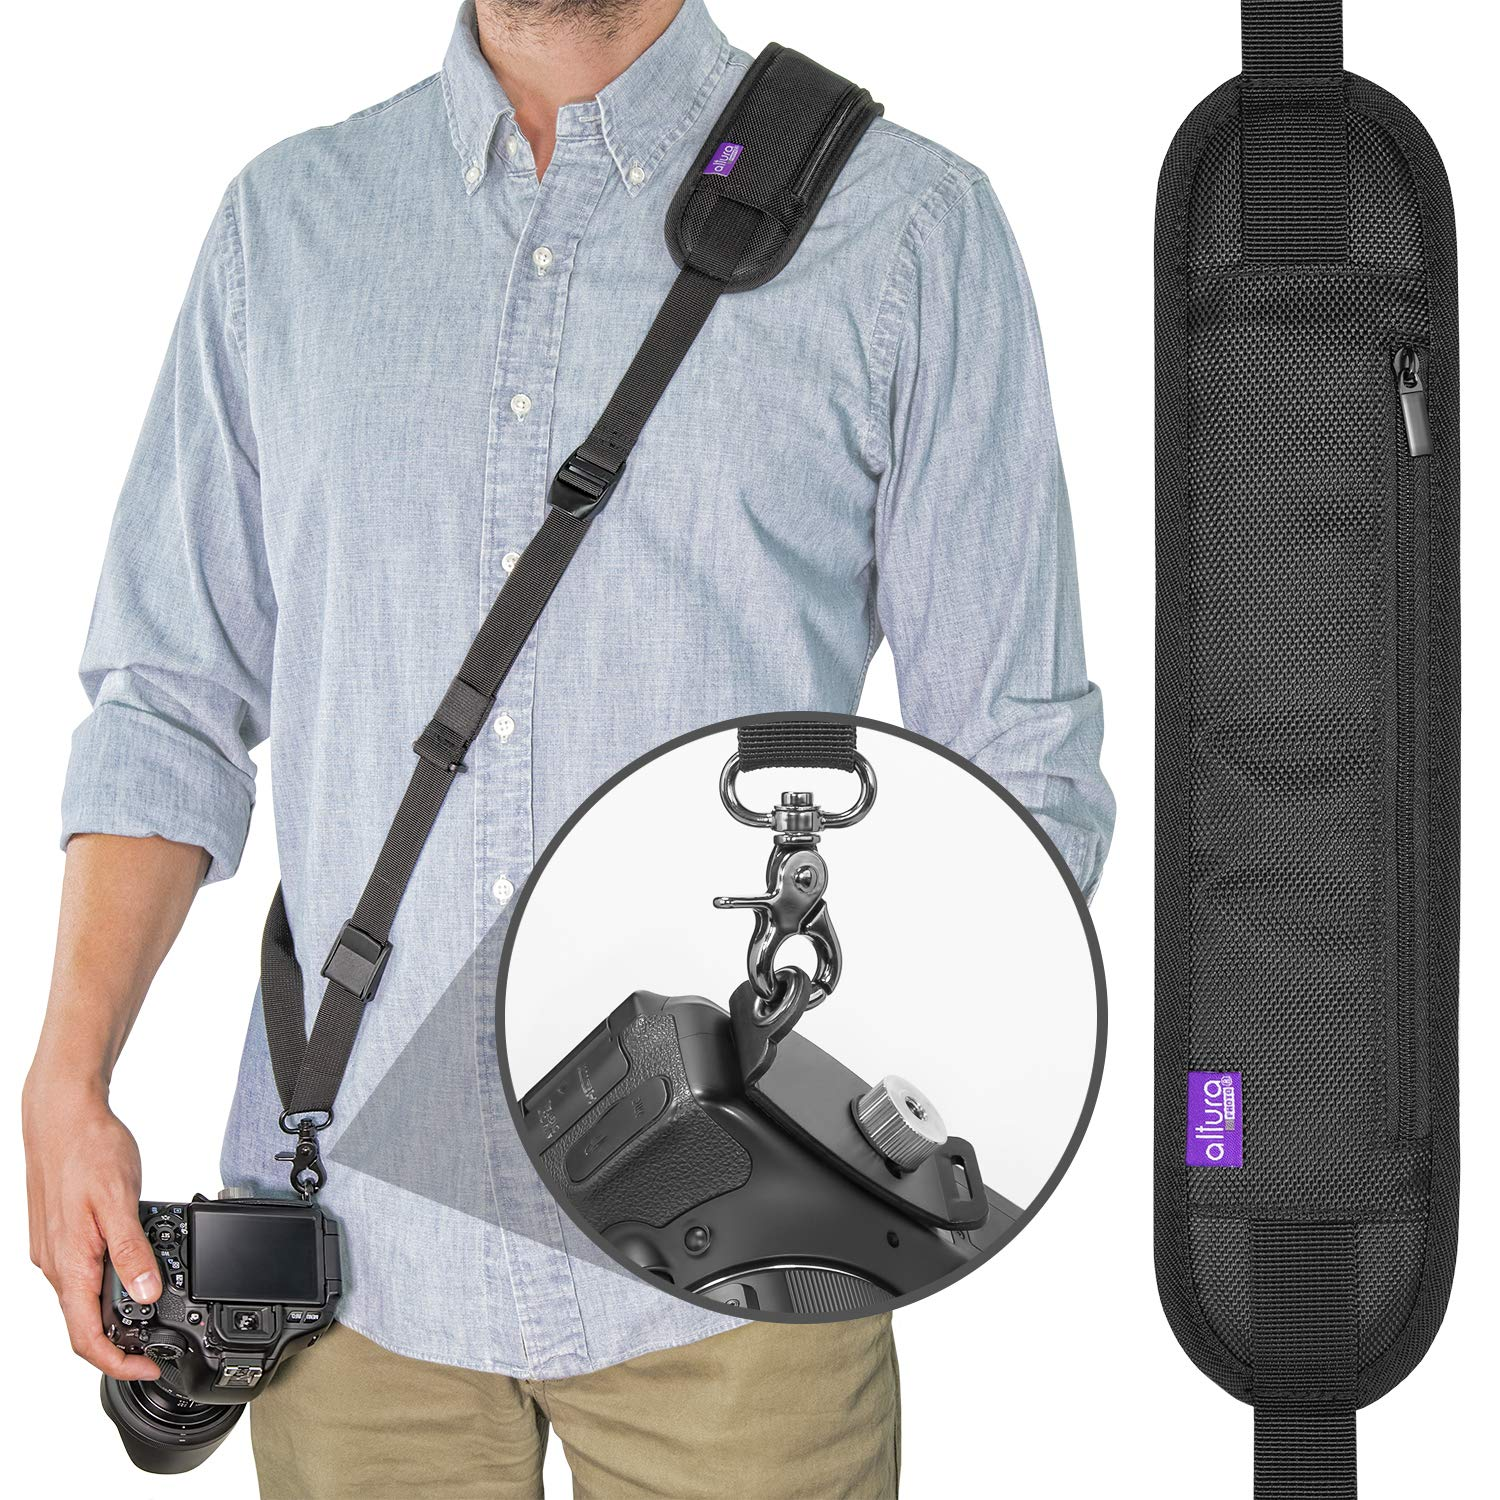 Altura Photo Rapid Fire Camera Neck Strap w/Quick Release and Safety Tether KR0011